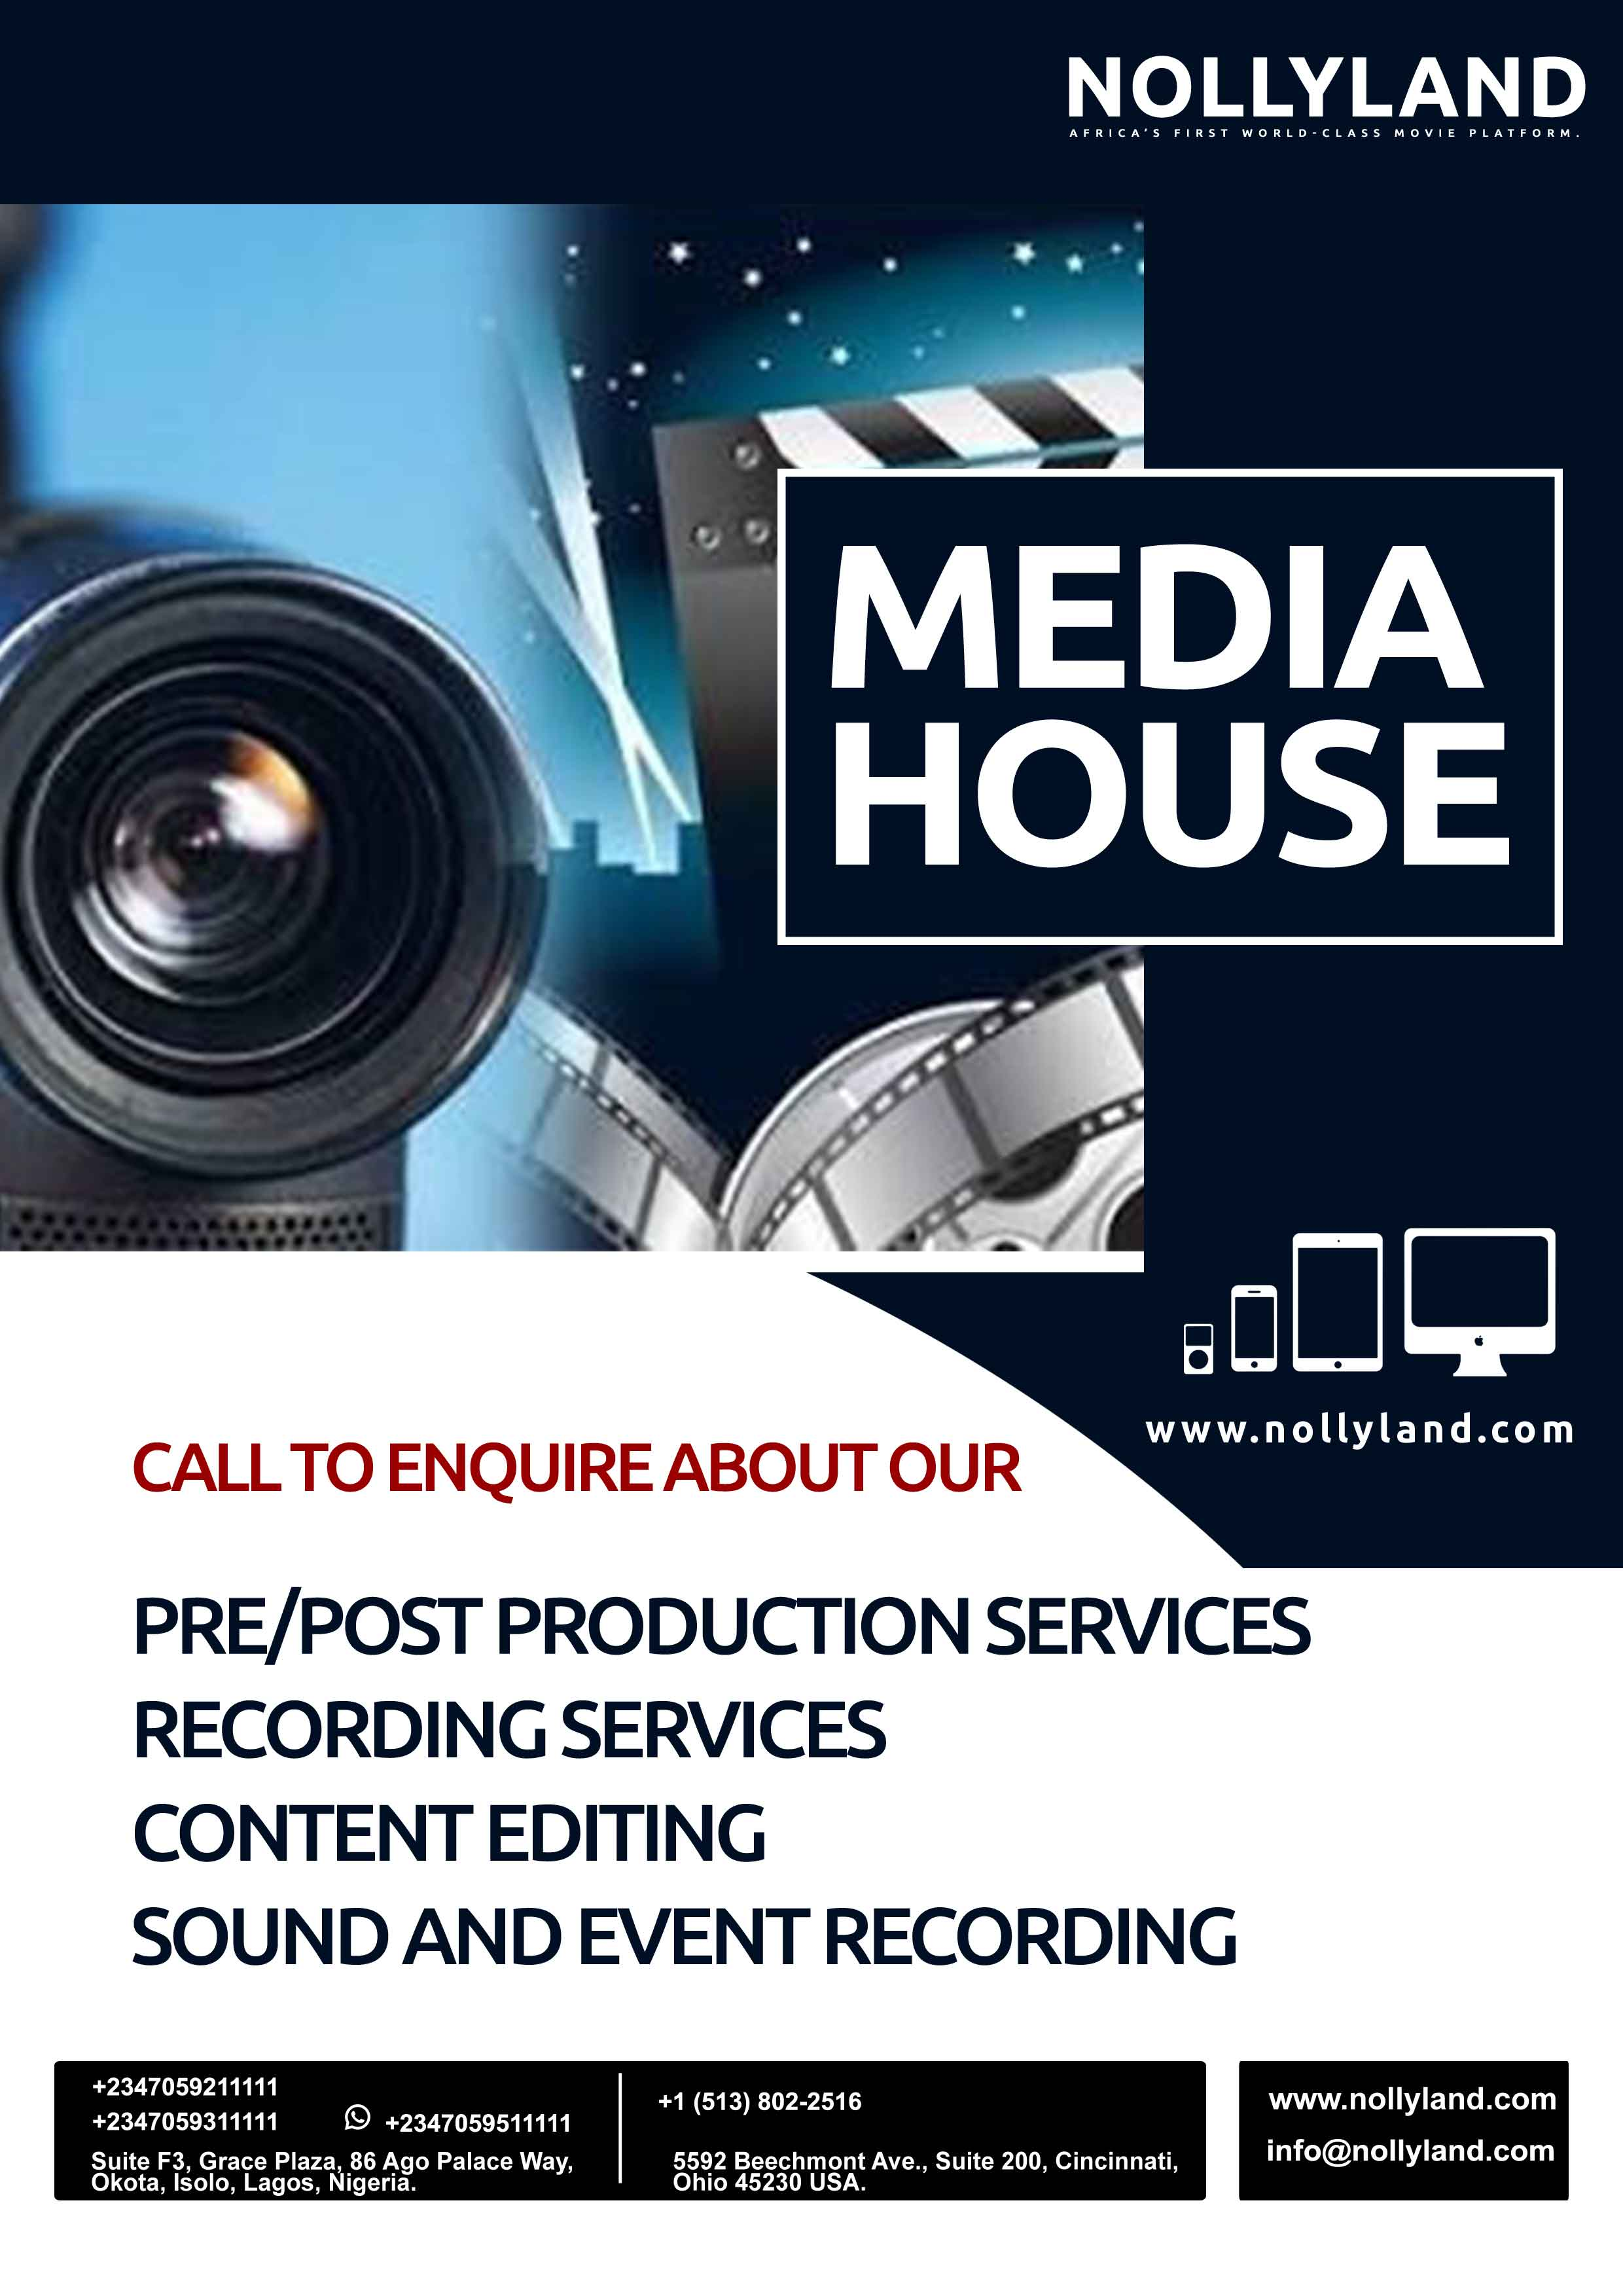 NollyLand Media House